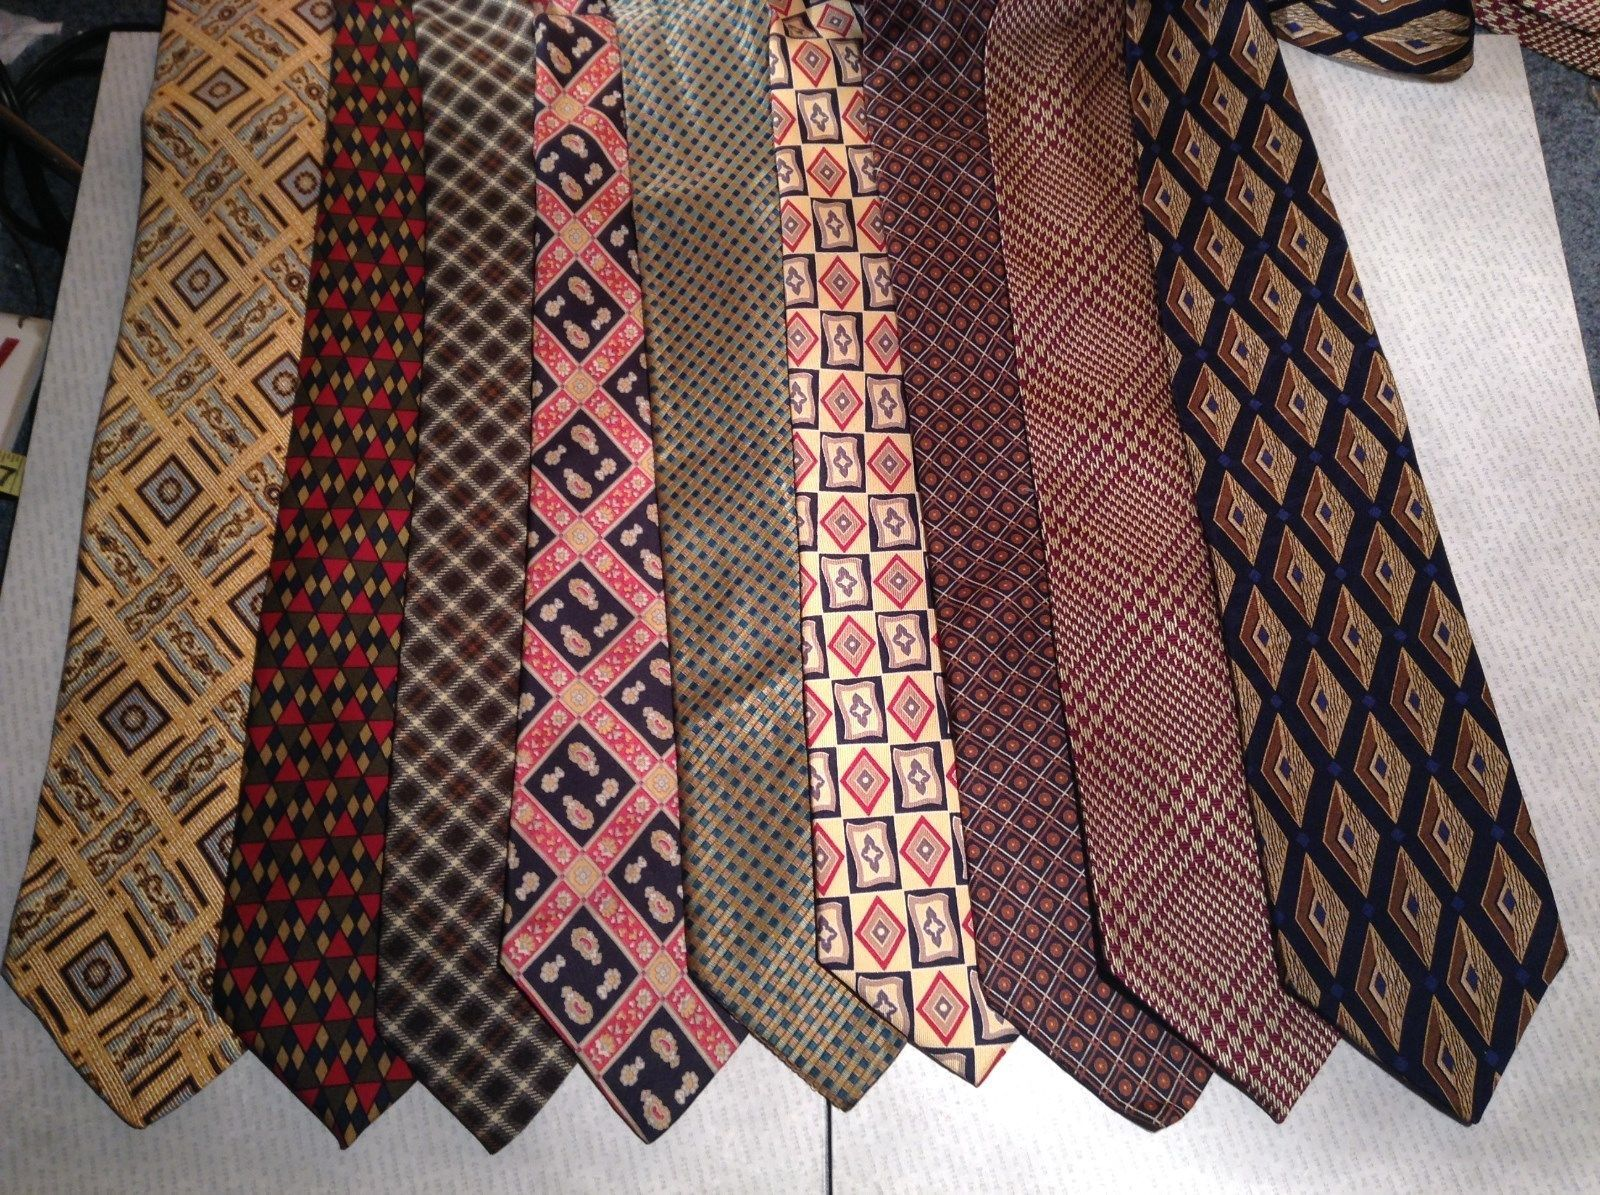 Different Light Patterned Ties Lot of Nine Varying Material and Styles